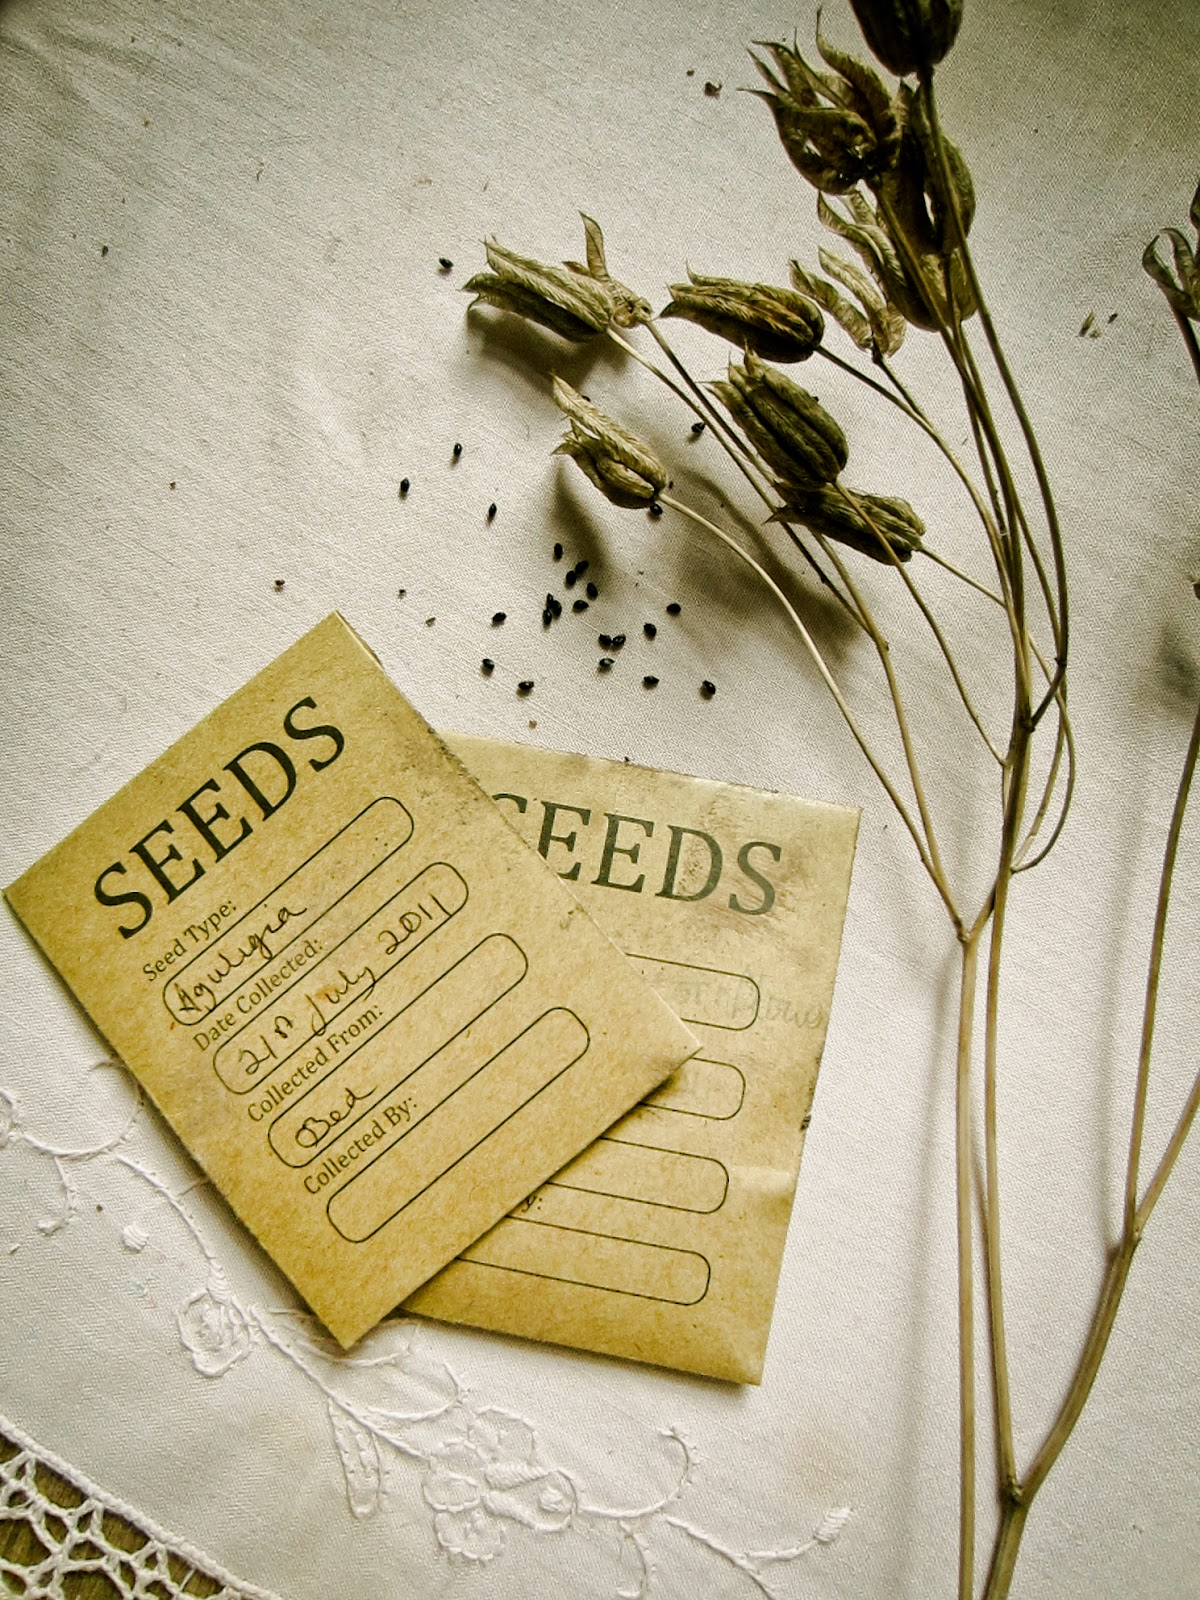 Burgon and ball seed storage packets